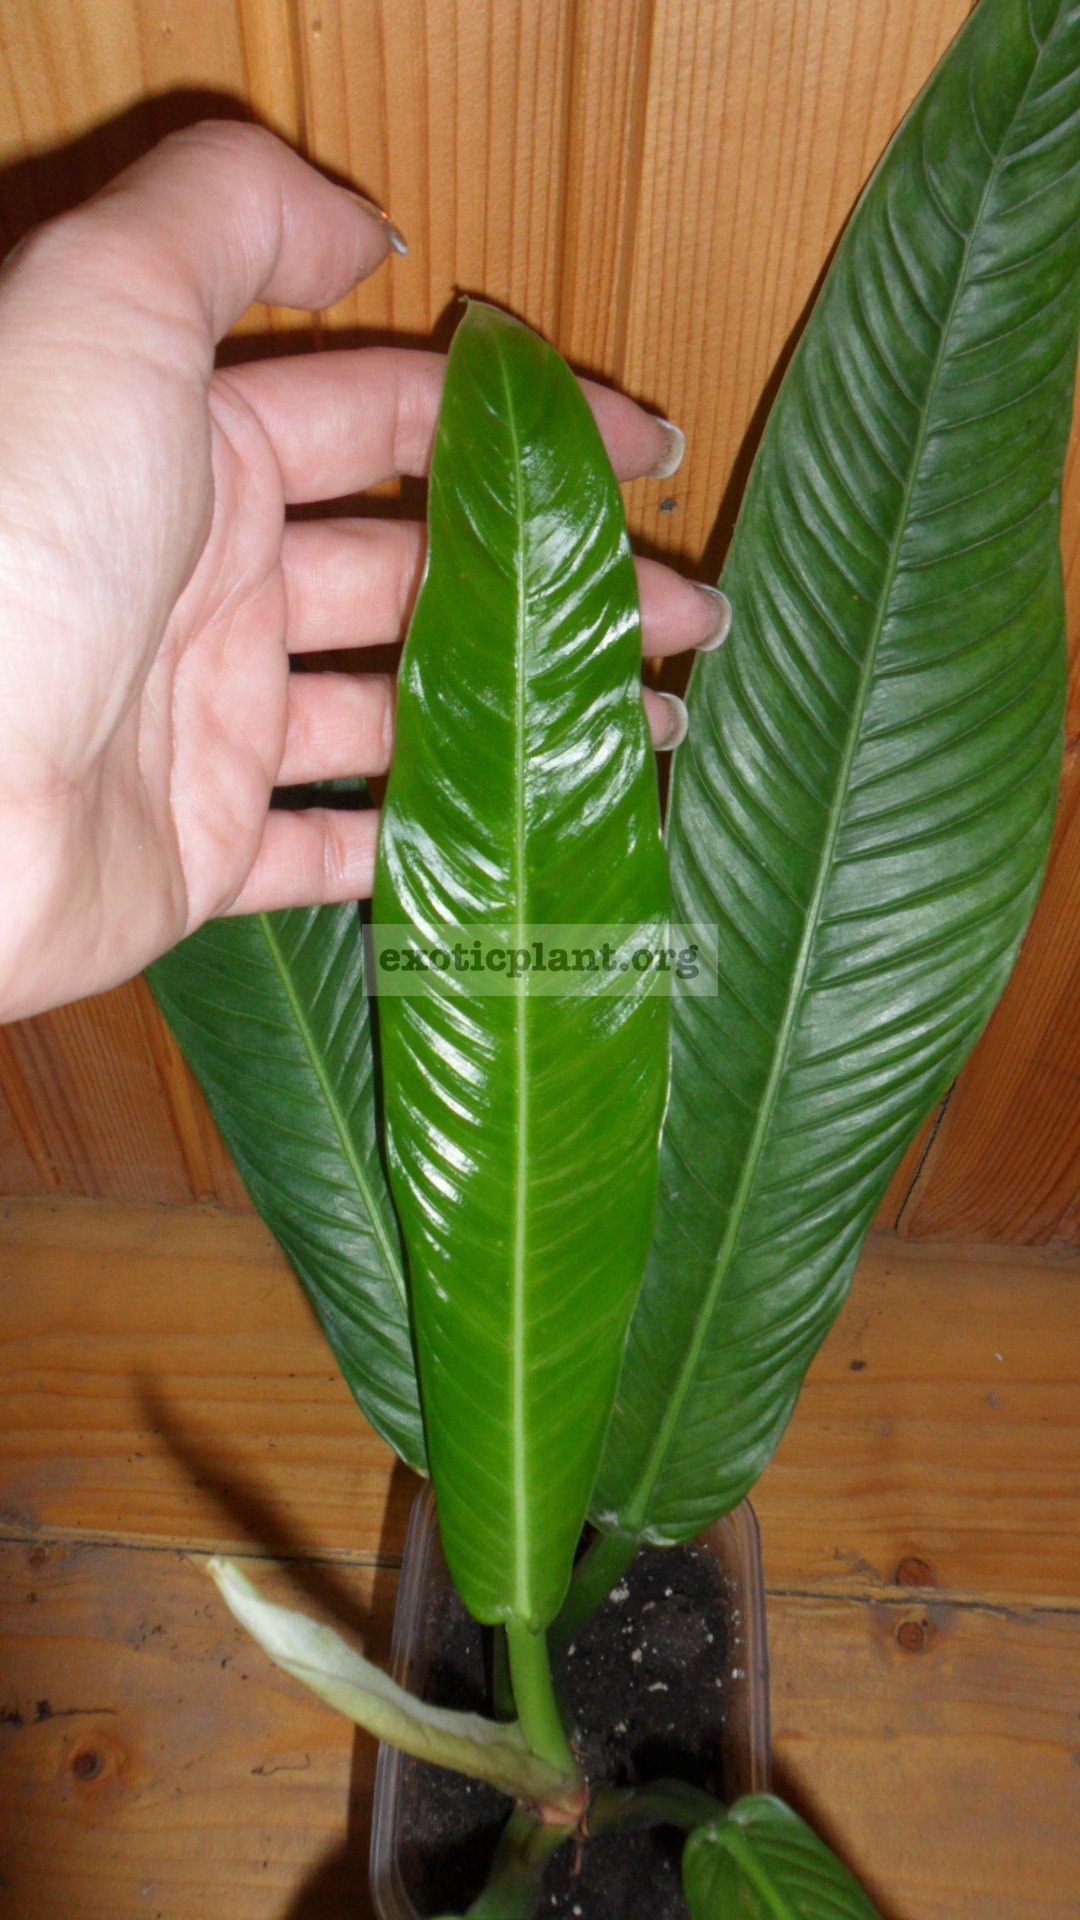 Philodendron lynette 20-30